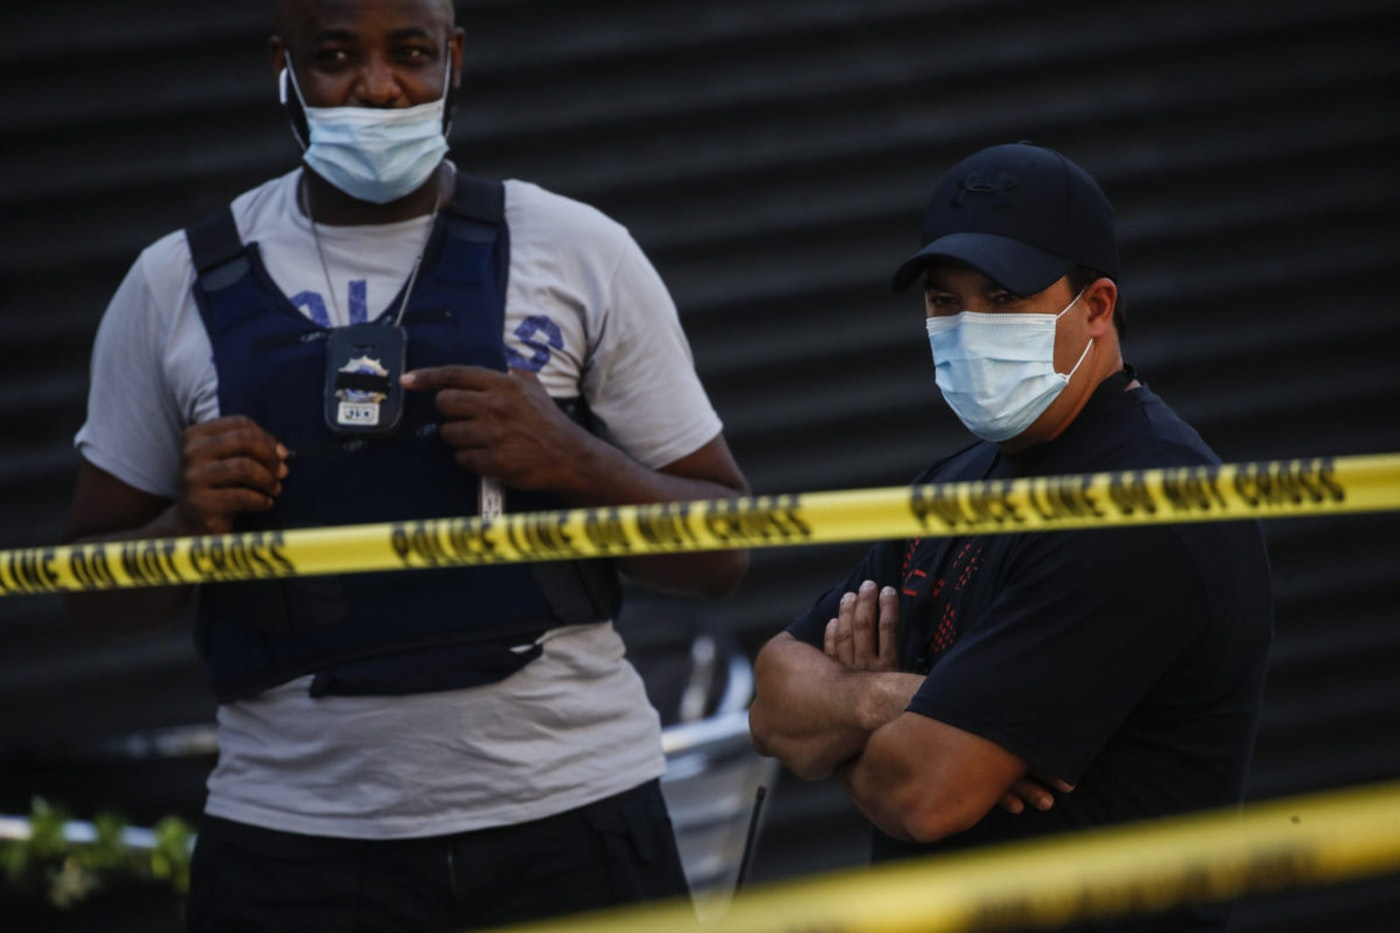 Police officers respond to a crime scene in Brooklyn, New York where a 23-year-old man was discovered with gunshot wounds before being transported to a hospital where he died from his injuries. (AP Photo/John Minchillo)